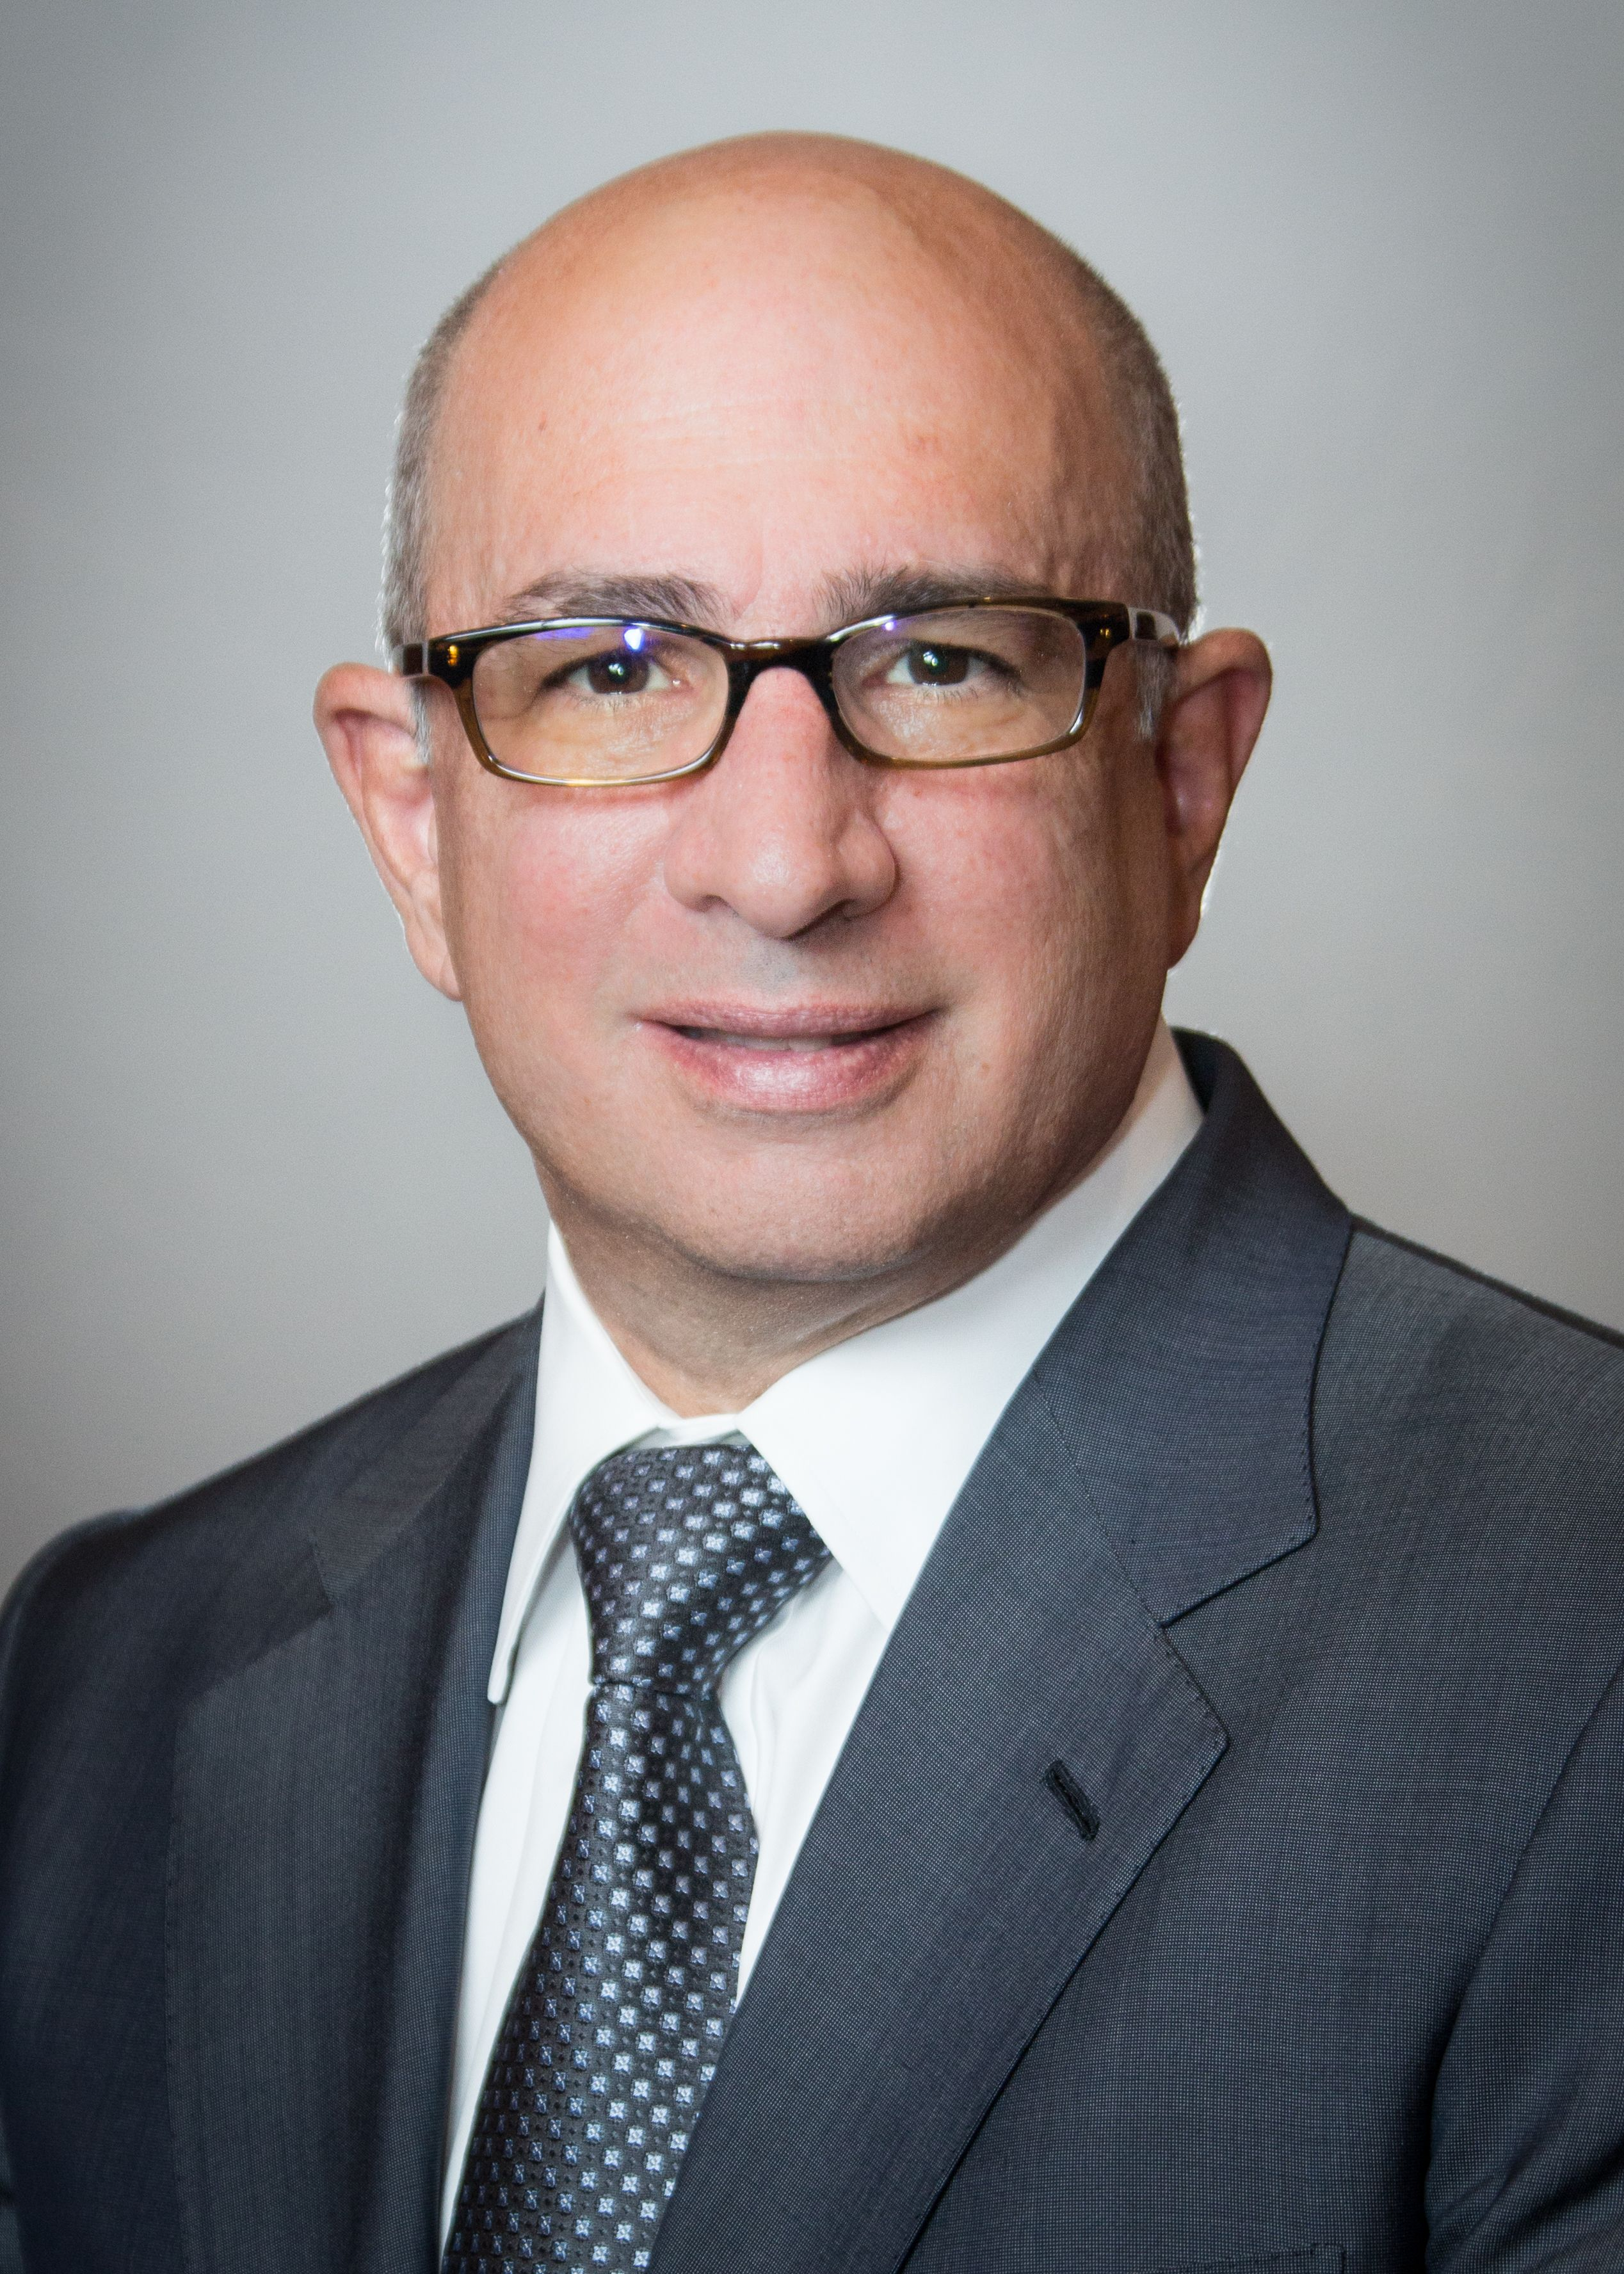 Peter Costantino, MD, wearing a black and silver tie